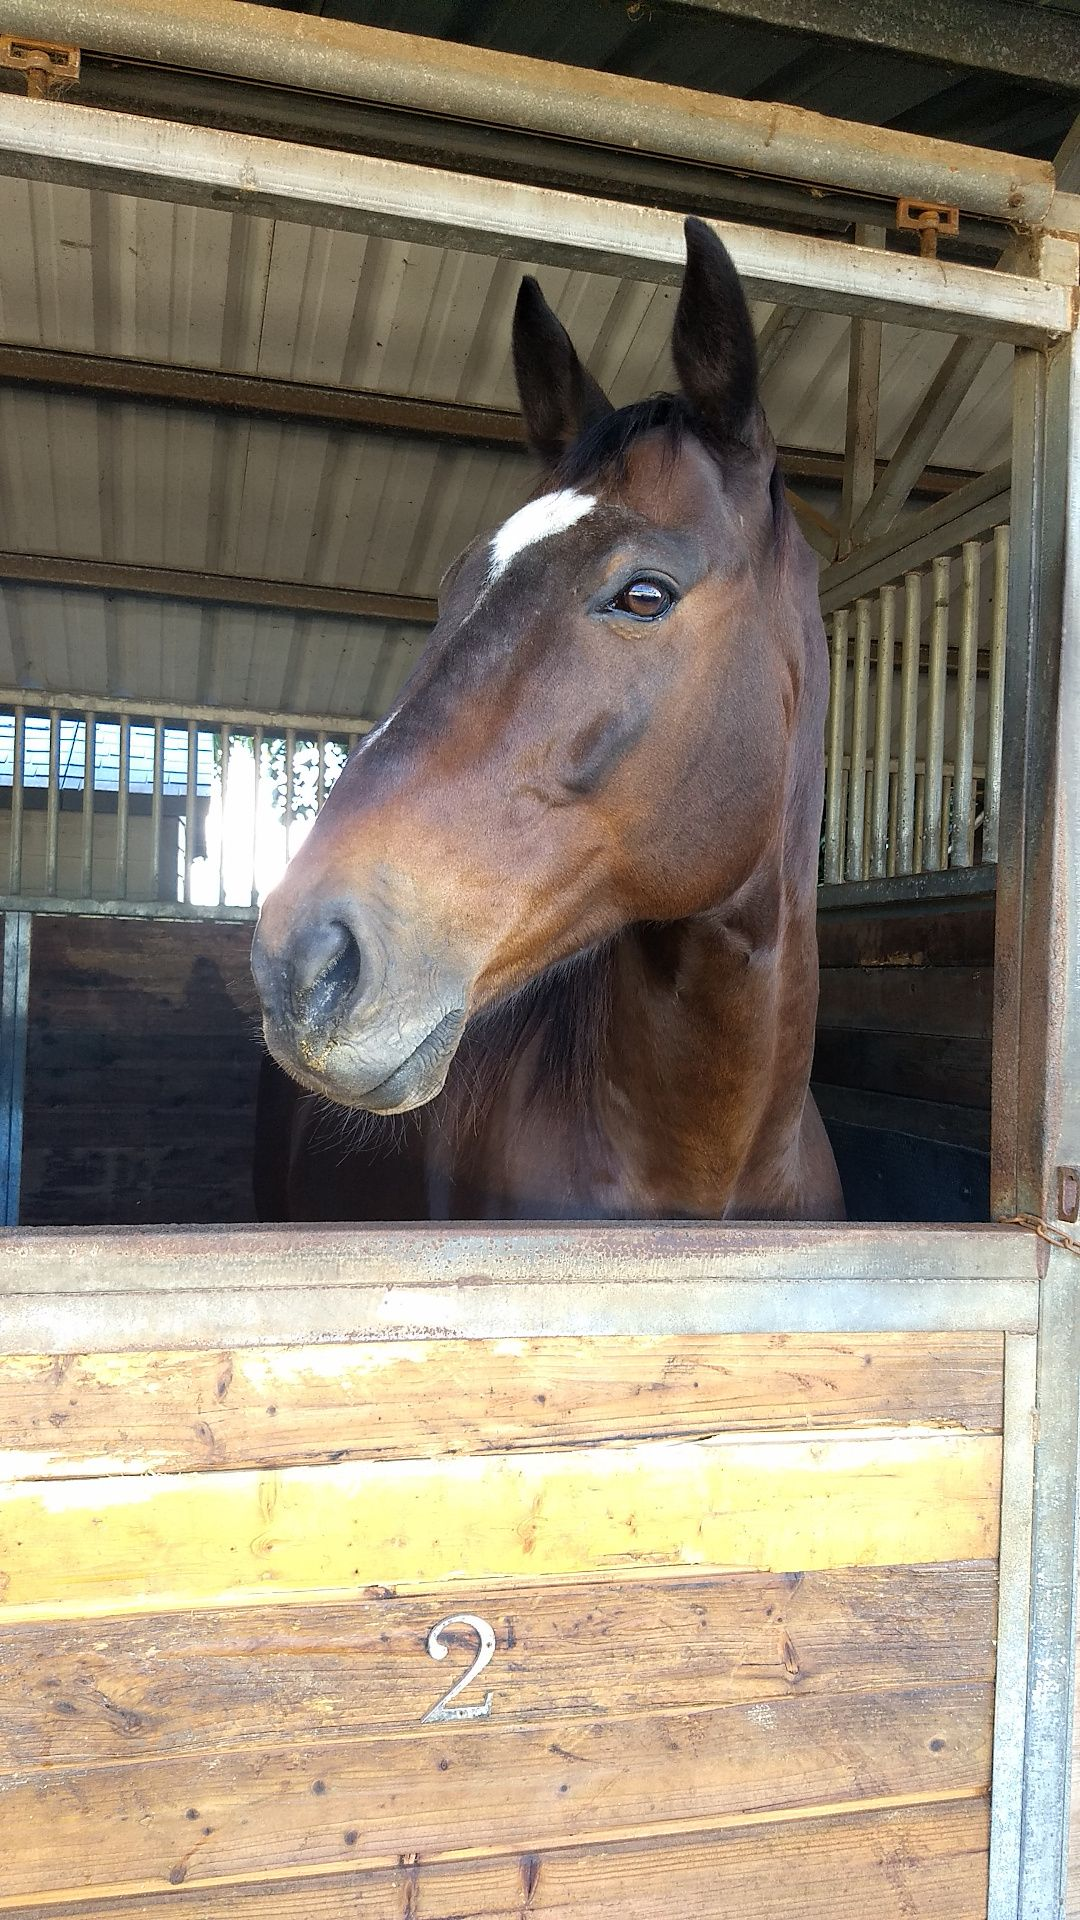 A large brown horse in his stall with a white patch on his forehead.